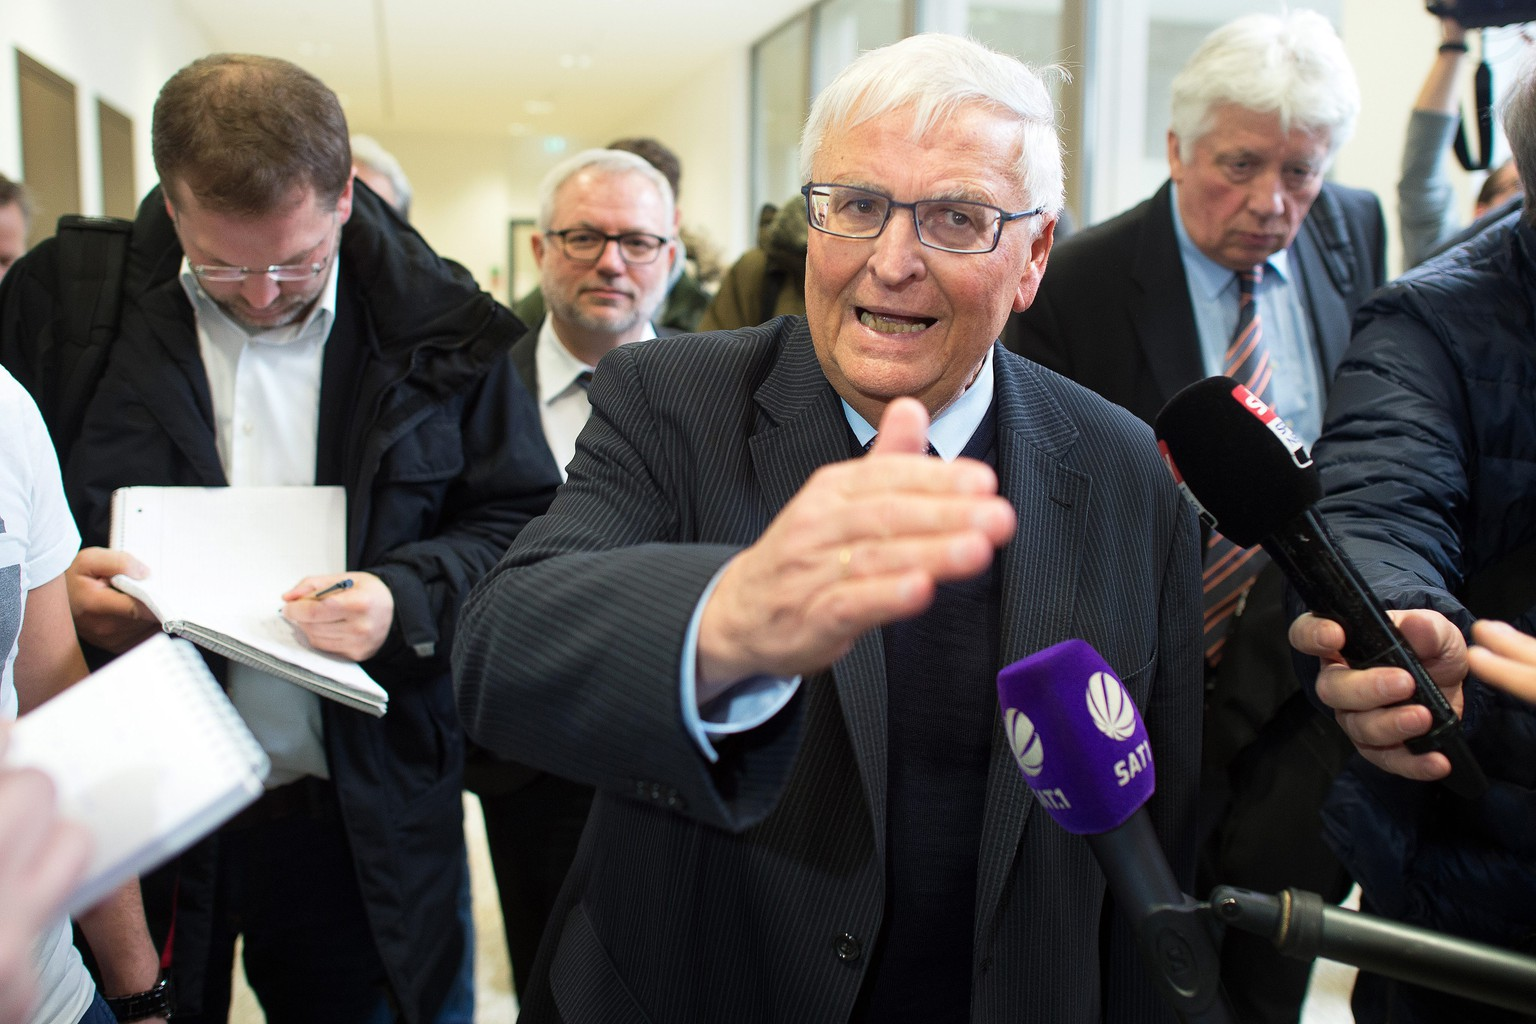 epa05139462 Theo Zwanziger (C), former president of the German Football Association (DFB), talks to journalists at the regional court in Duesseldorf, Germany, 02 February 2016. The Qatar Football Association (QFA) has filed a lawsuit against former FIFA executive Zwanziger for referring to the 2022 World Cup hosts as the 'cancerous growth on world football.'  EPA/FEDERICO GAMBARINI